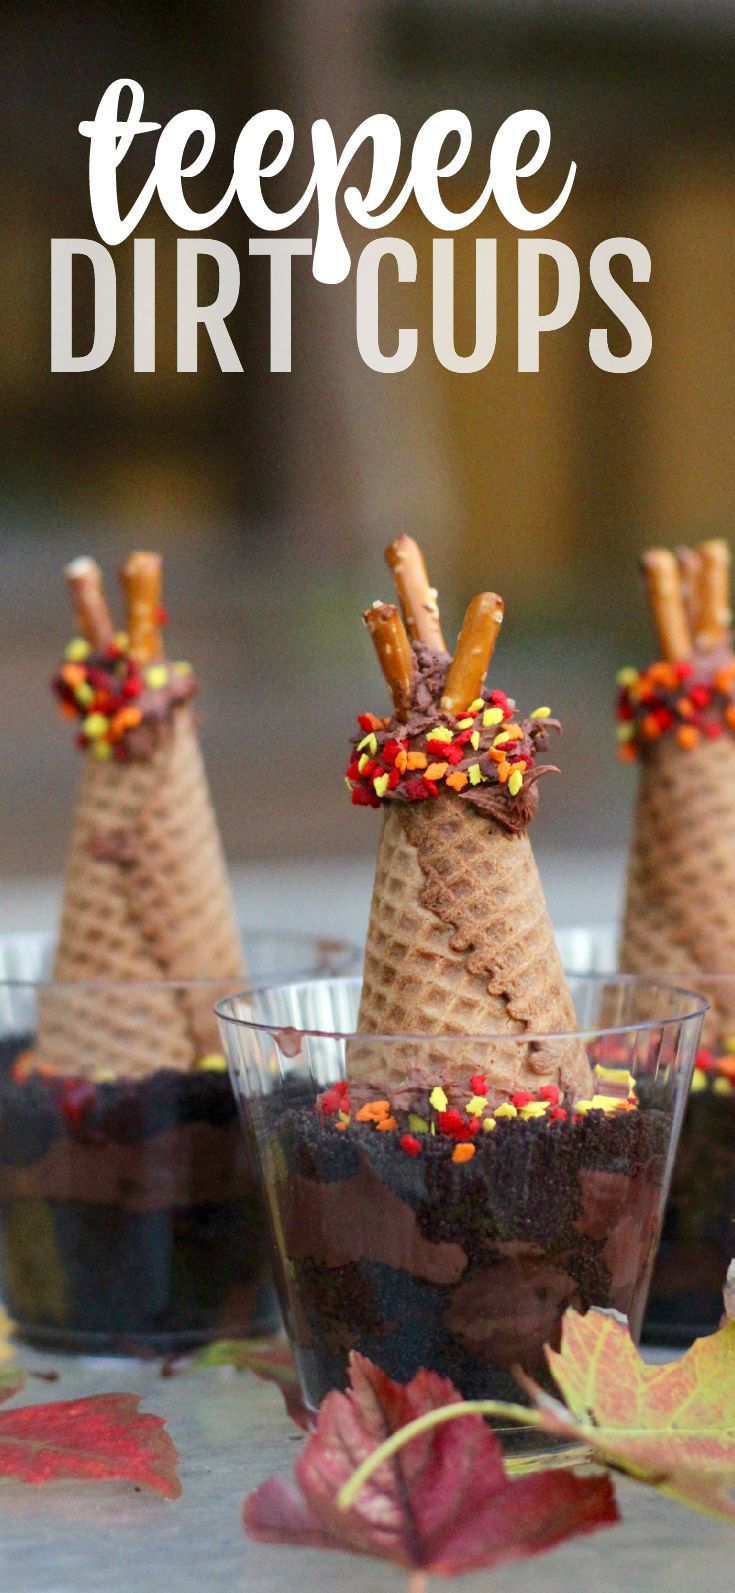 Teepee Dirt Cups:  The perfect teepee snack for kids of all ages.  Children can learn about the various shelters of nomadic Indian tribes and also bury a fish just like the Wampanoag Indians taught the Pilgrims to do at the First Thanksgiving!